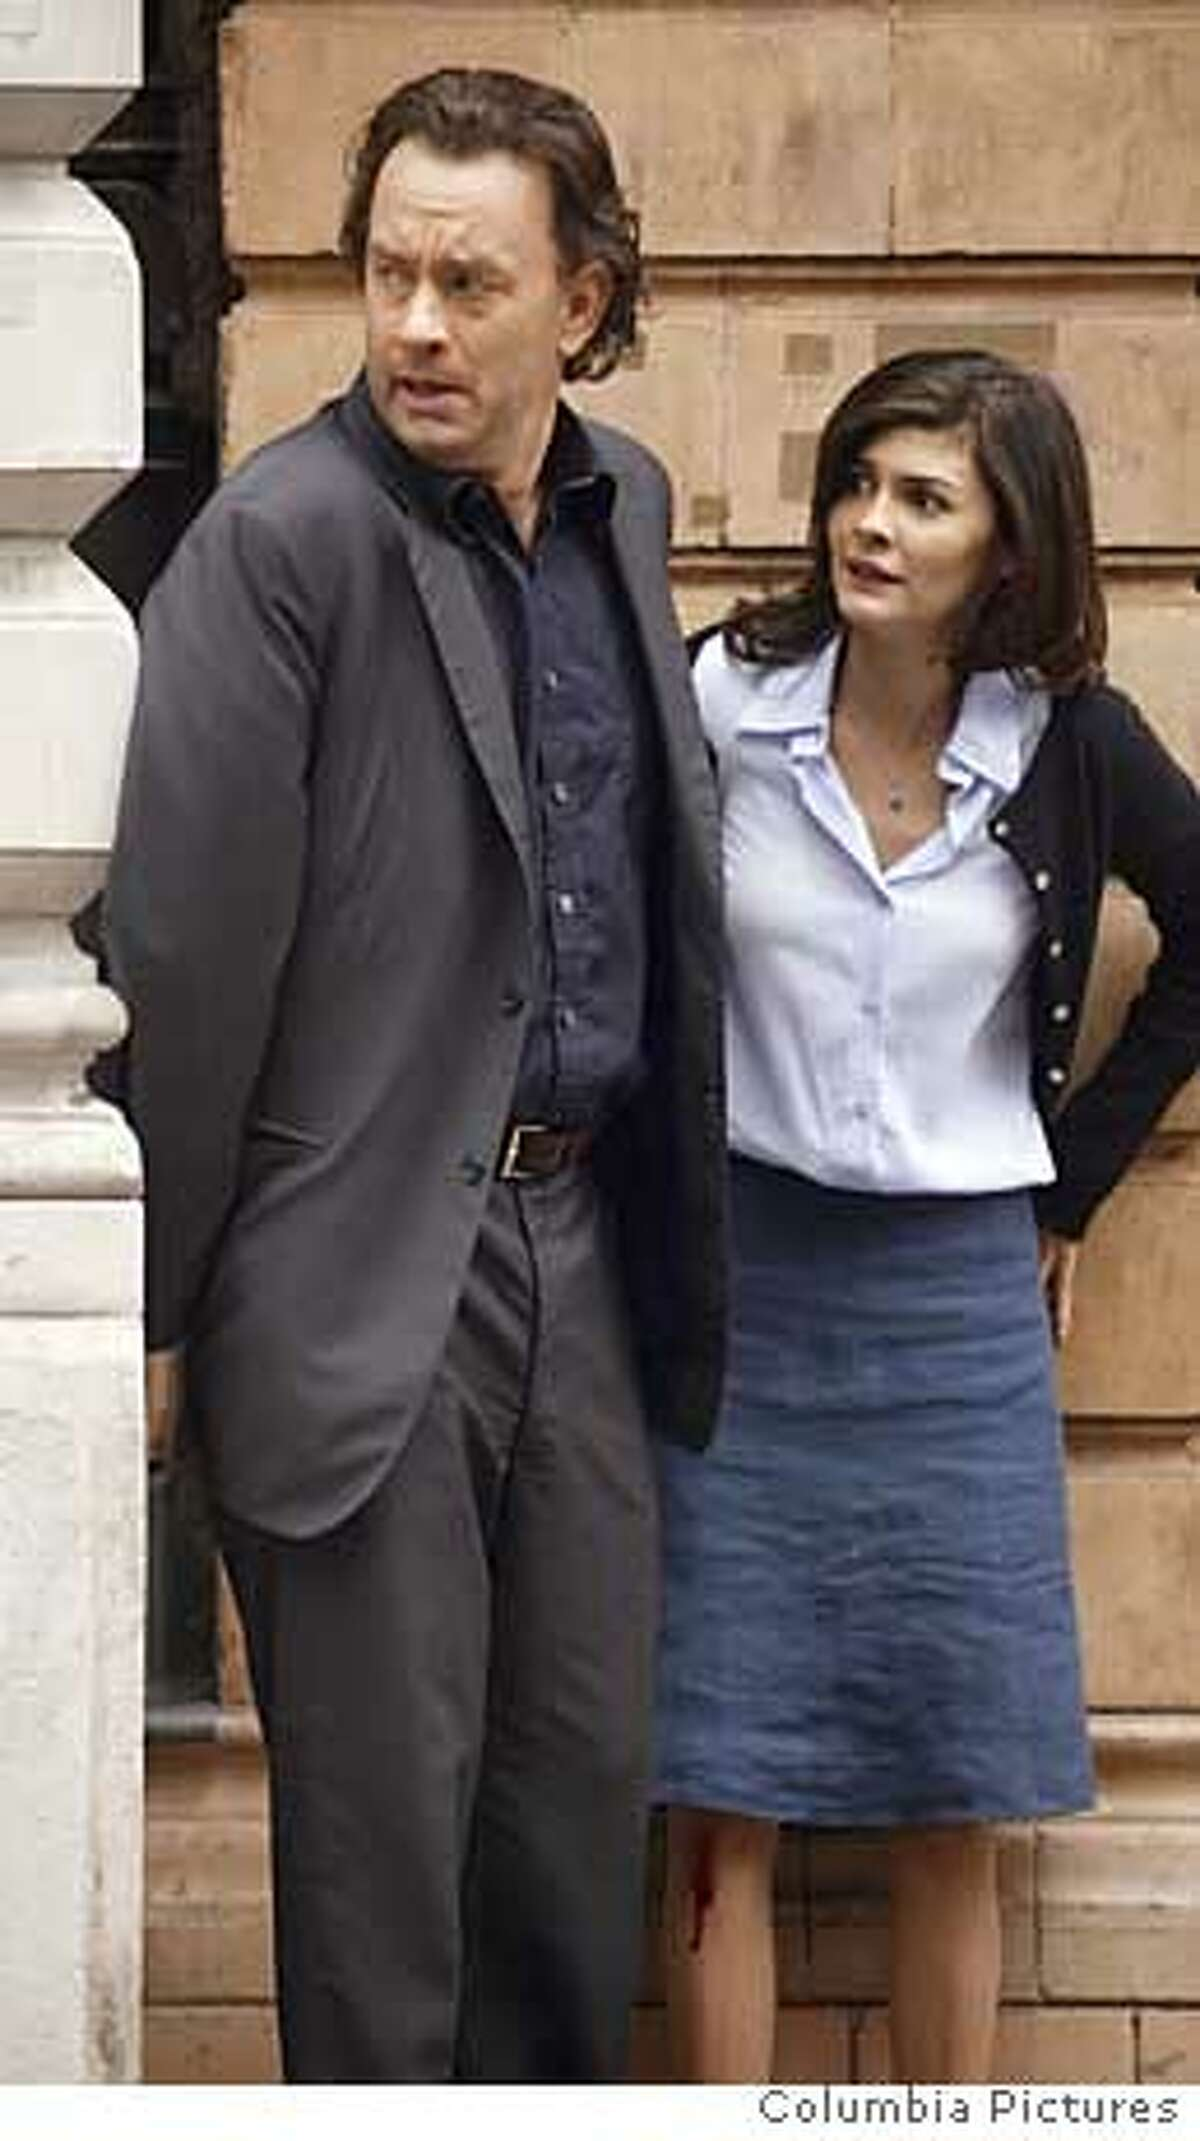 """tom hanks and audrey tautou in """"the davinci code"""" CAPTION:�� September 18, 2005 AUDREY TATTOO & TOM HANKS filming """"The DaVinci Code"""" in London. Fee/Capital Pictures/GAMMA Ran on: 03-27-2006"""